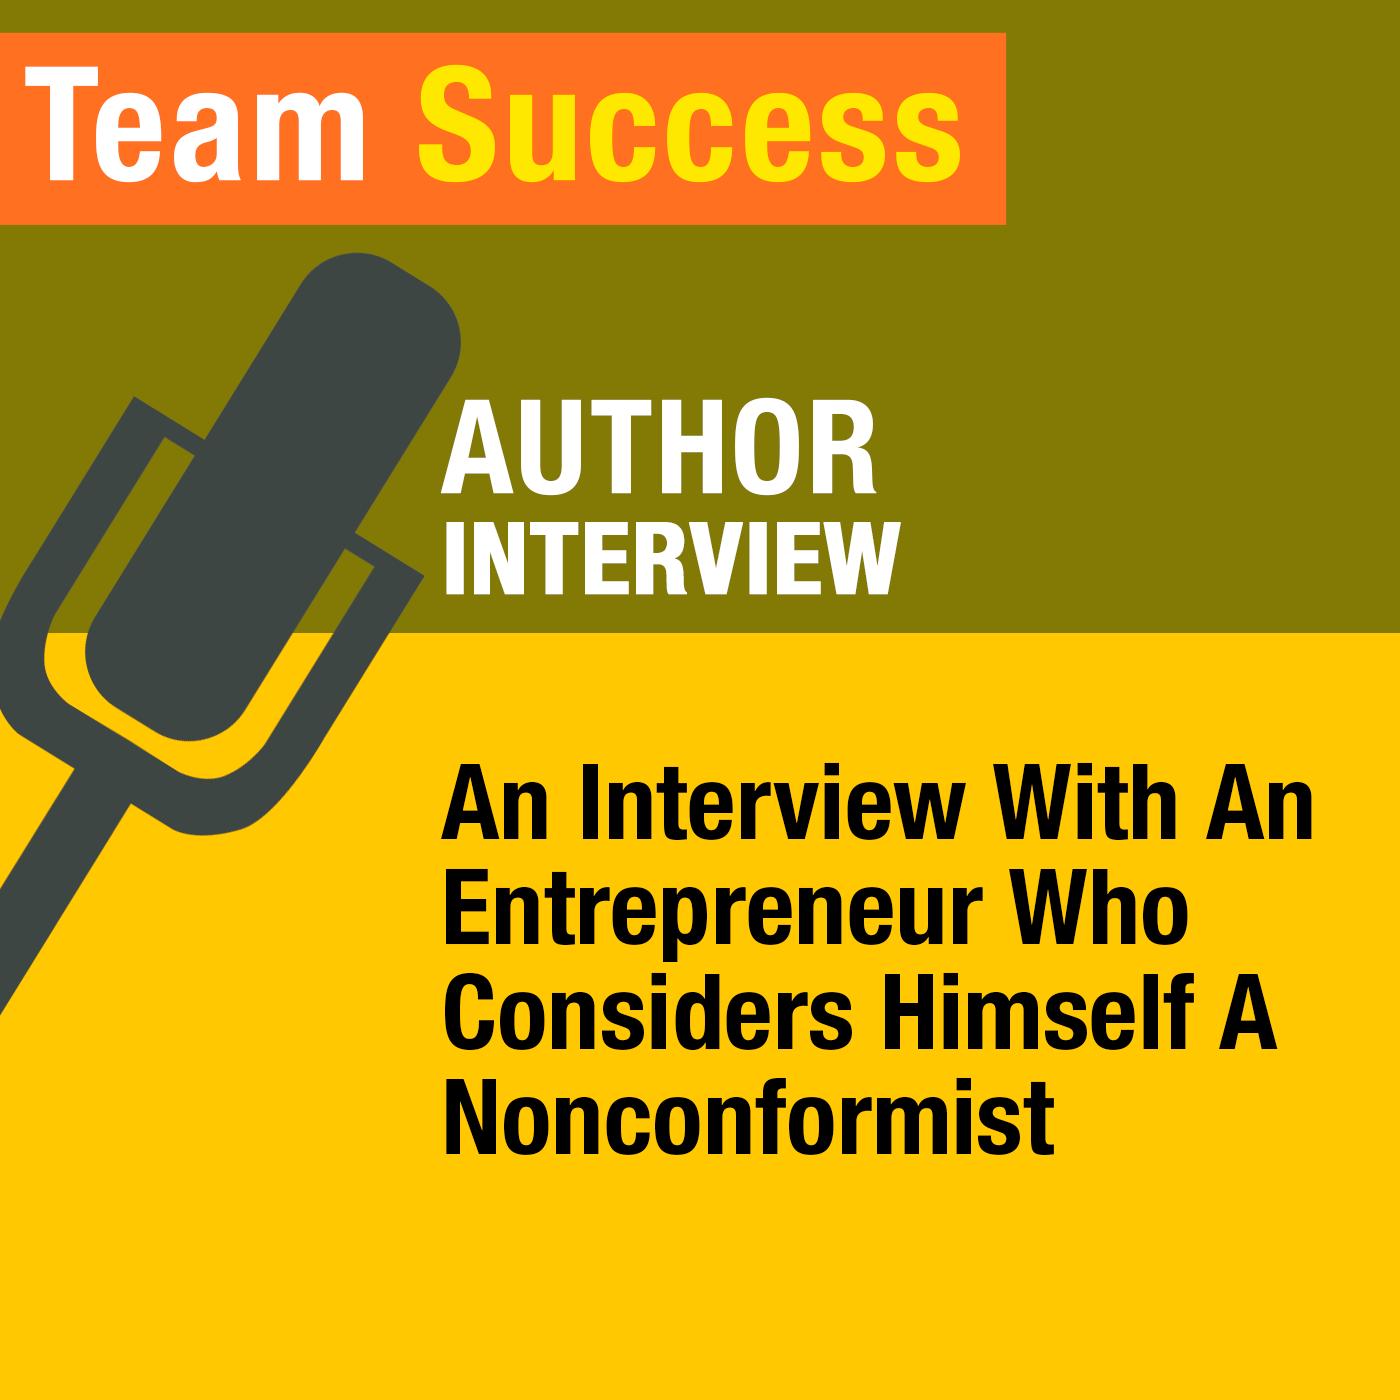 An Interview With An Entrepreneur Who Considers Himself A Nonconformist